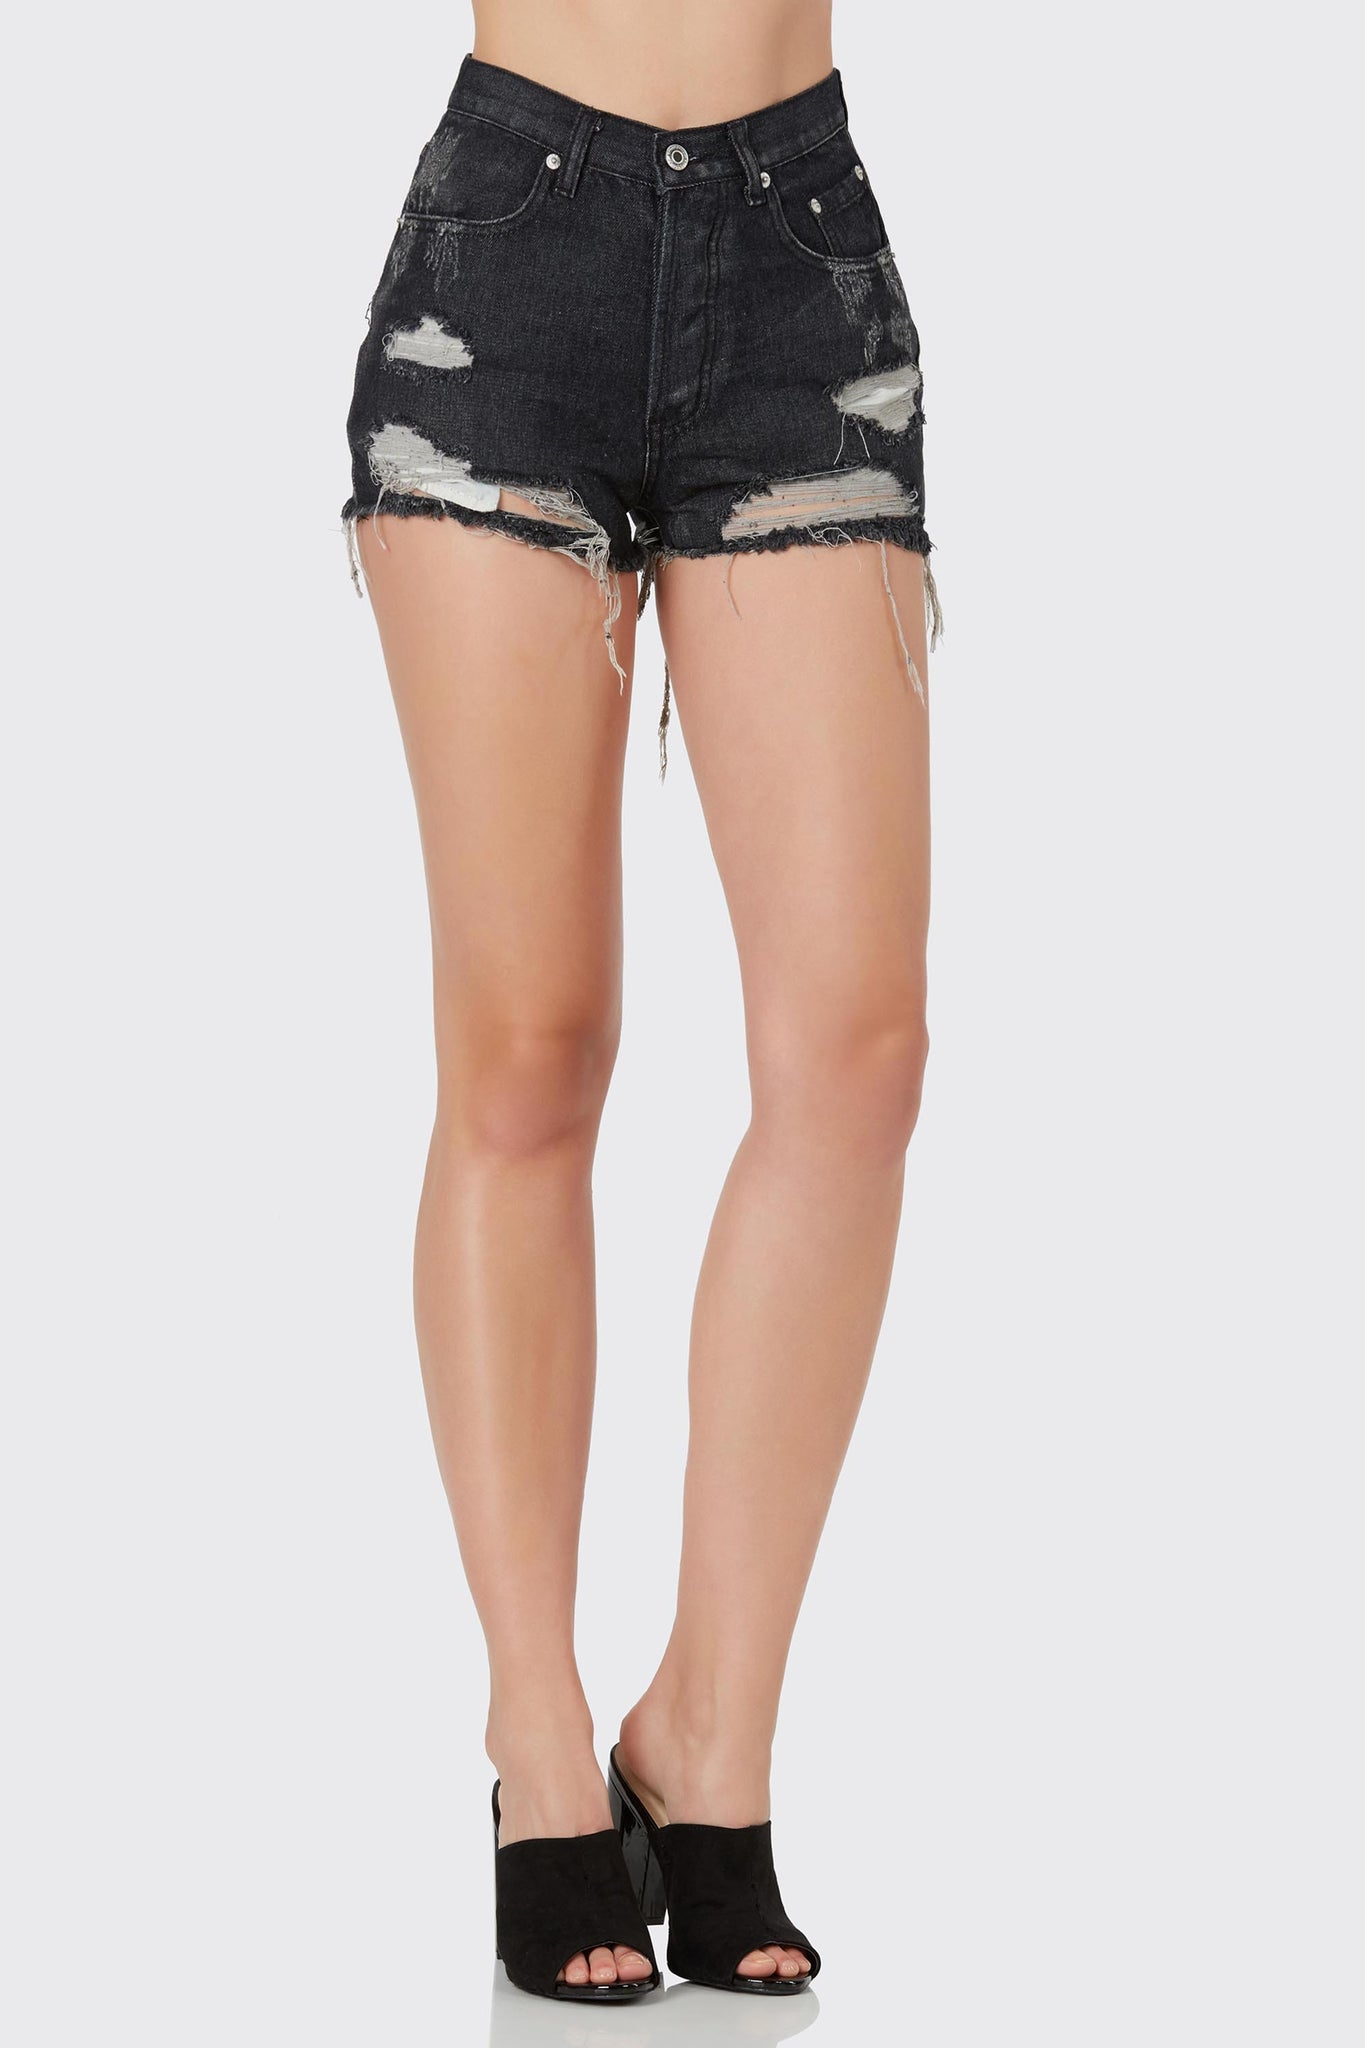 Basic high rise denim shorts with heavy distressing and raw hem finish. 5 pocket design with button up closure.